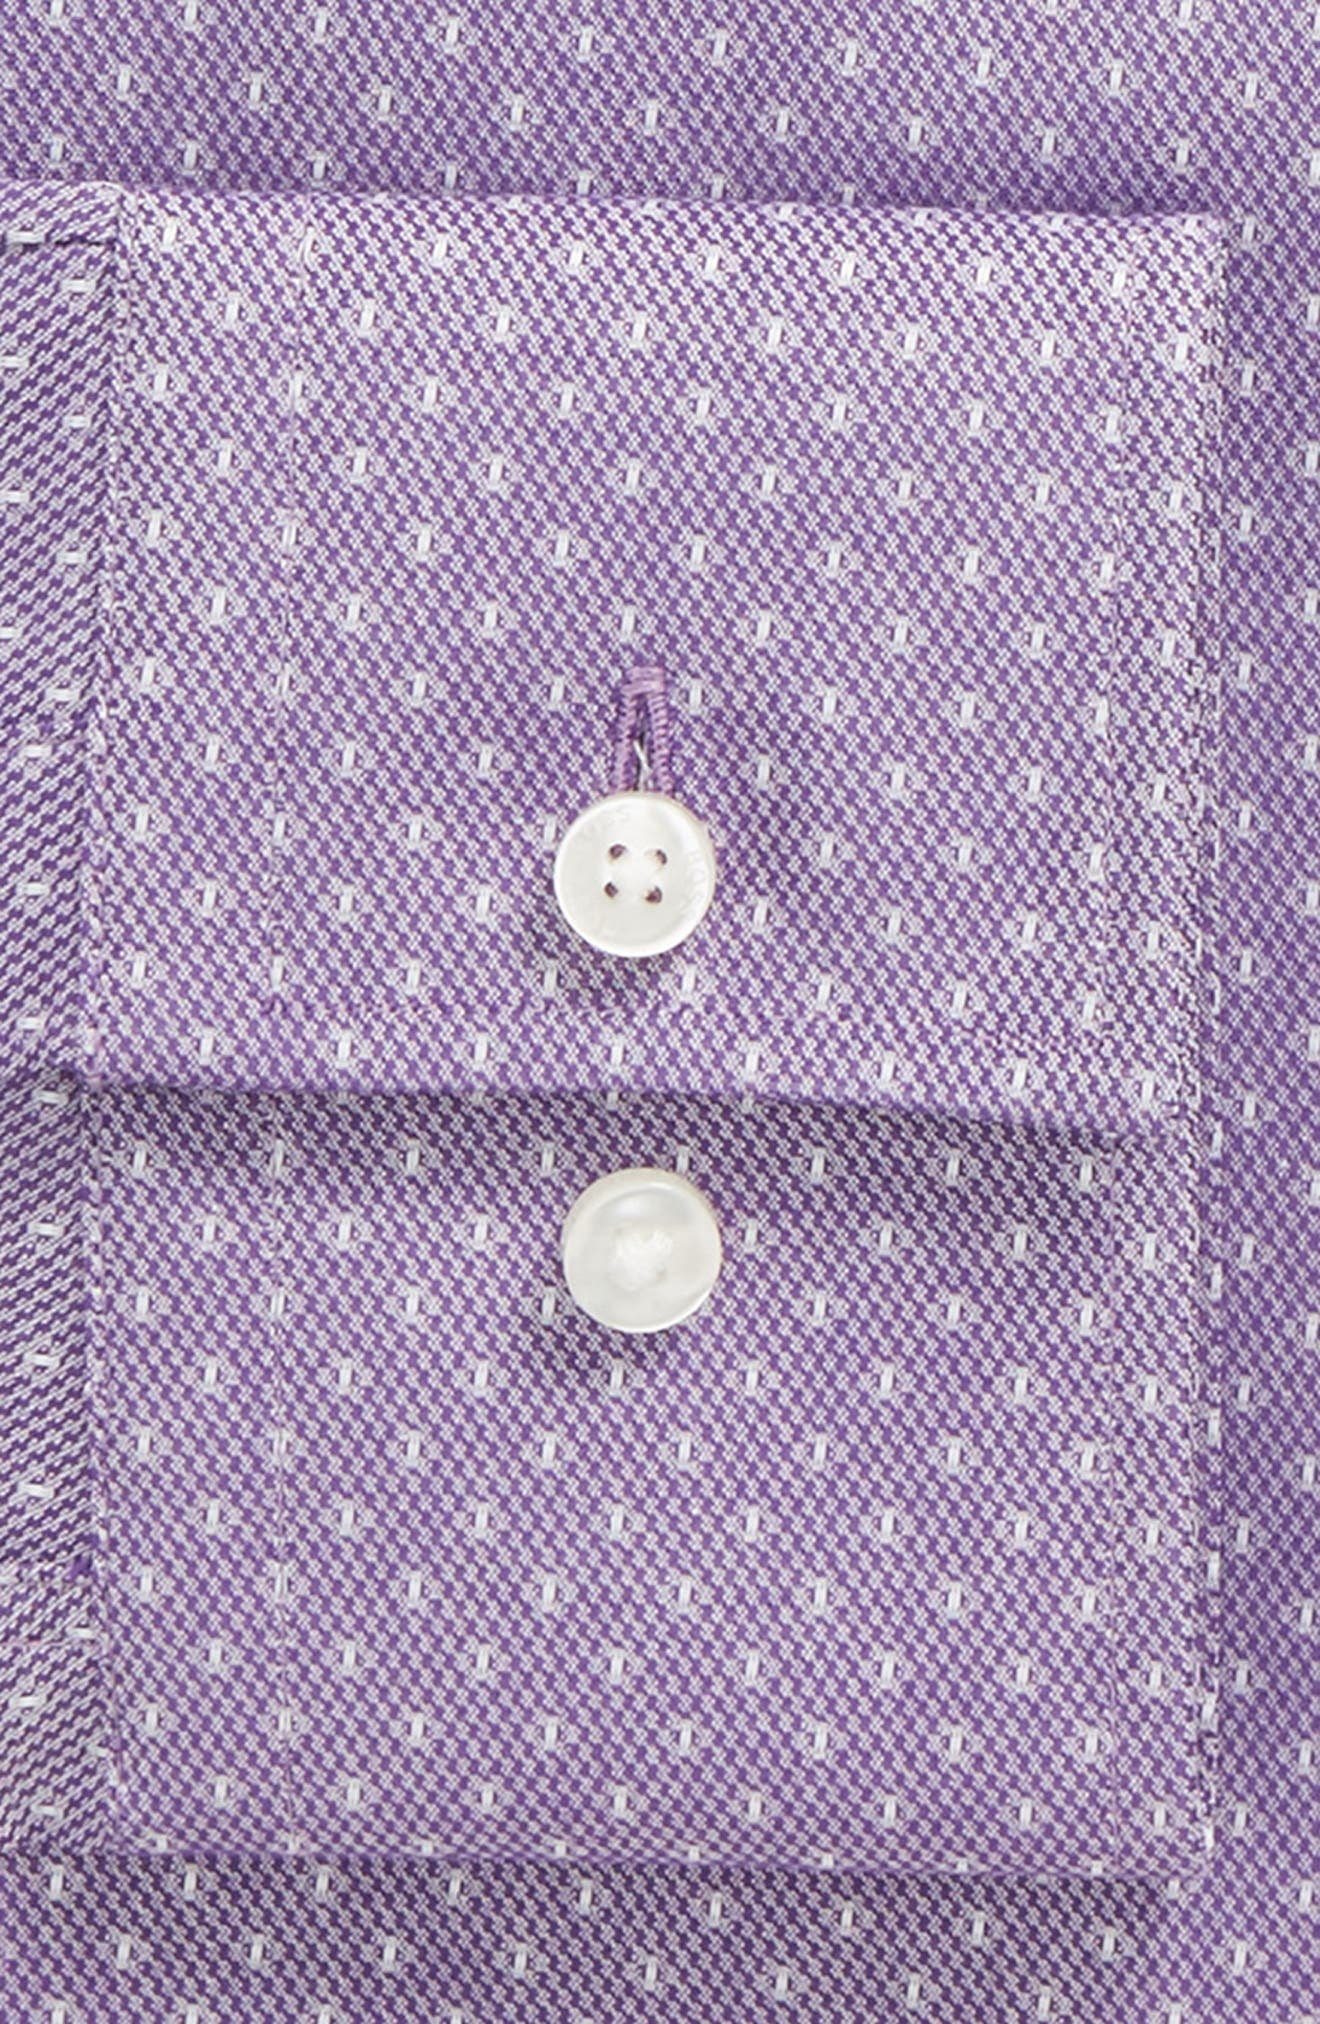 Jason Slim Fit Dot Dress Shirt,                             Alternate thumbnail 2, color,                             Purple